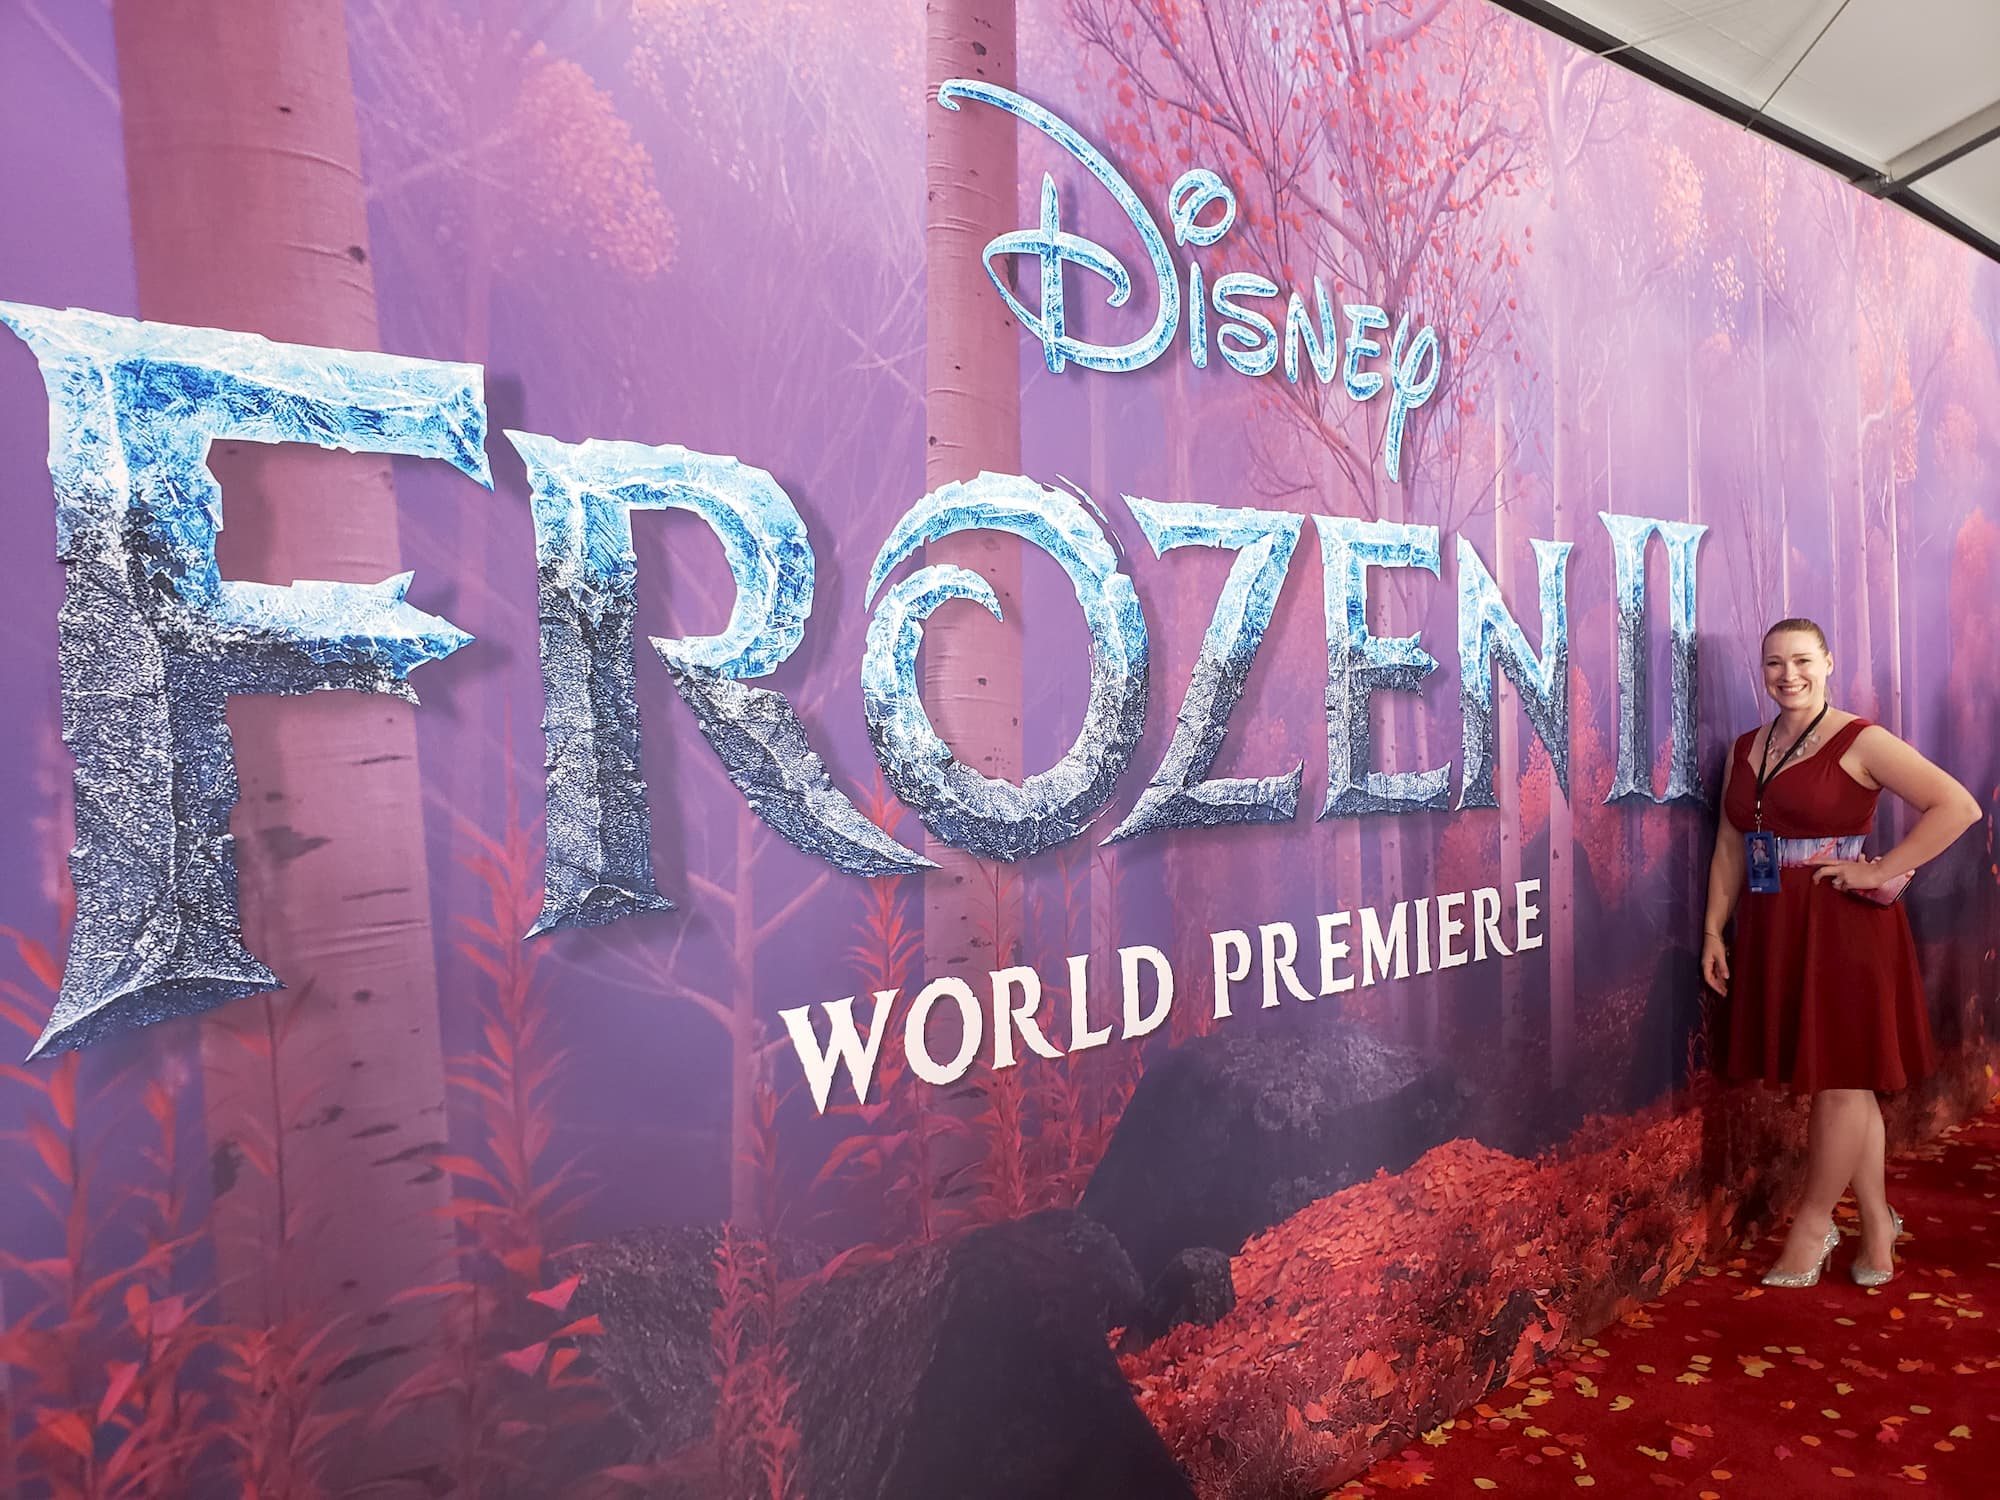 A Small Town Girl's Frozen 2 Red Carpet World Premiere Experience